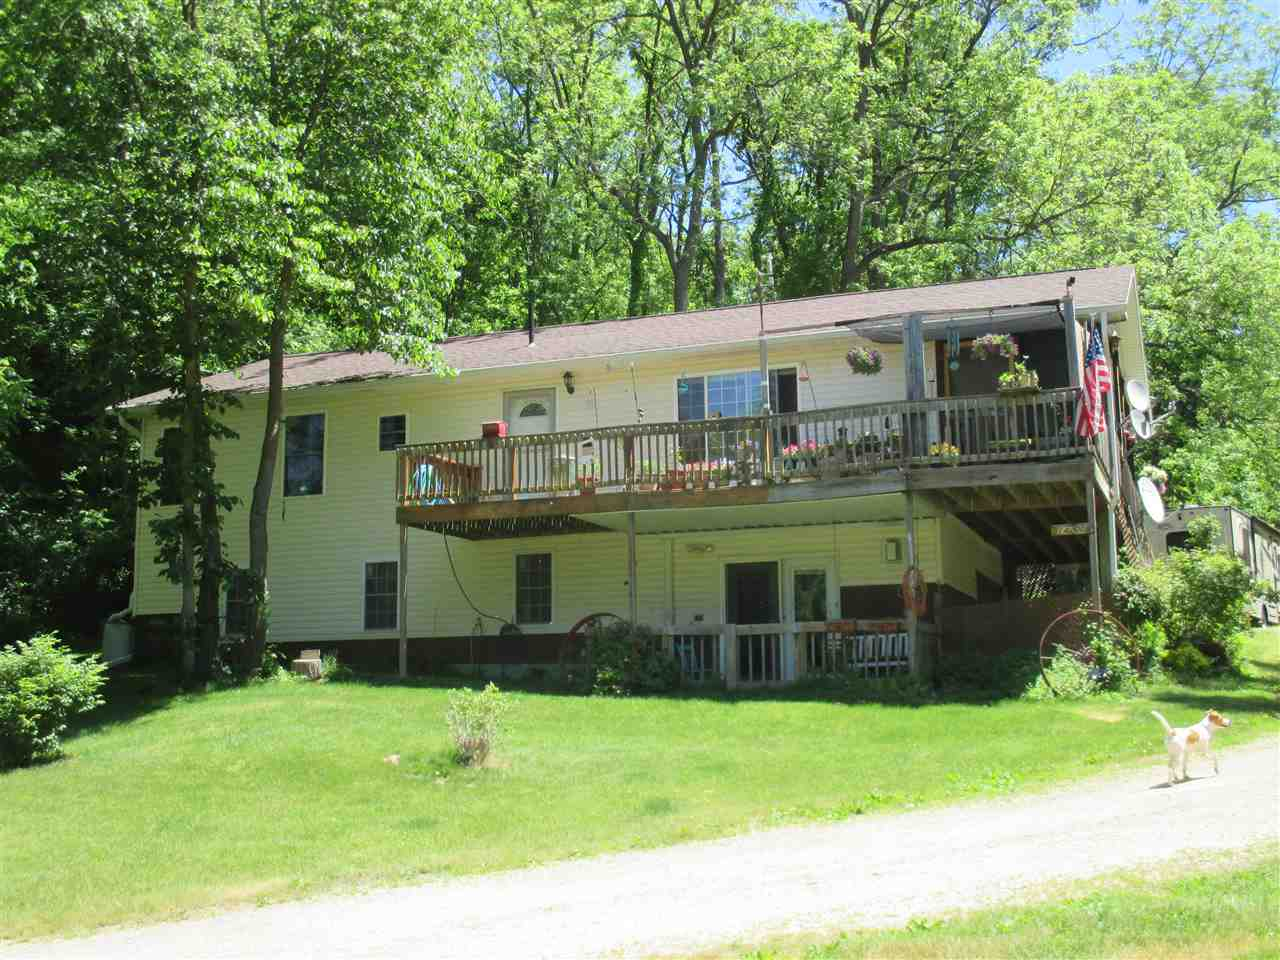 14200 Barker Hollow Rd, Millville, WI 53827